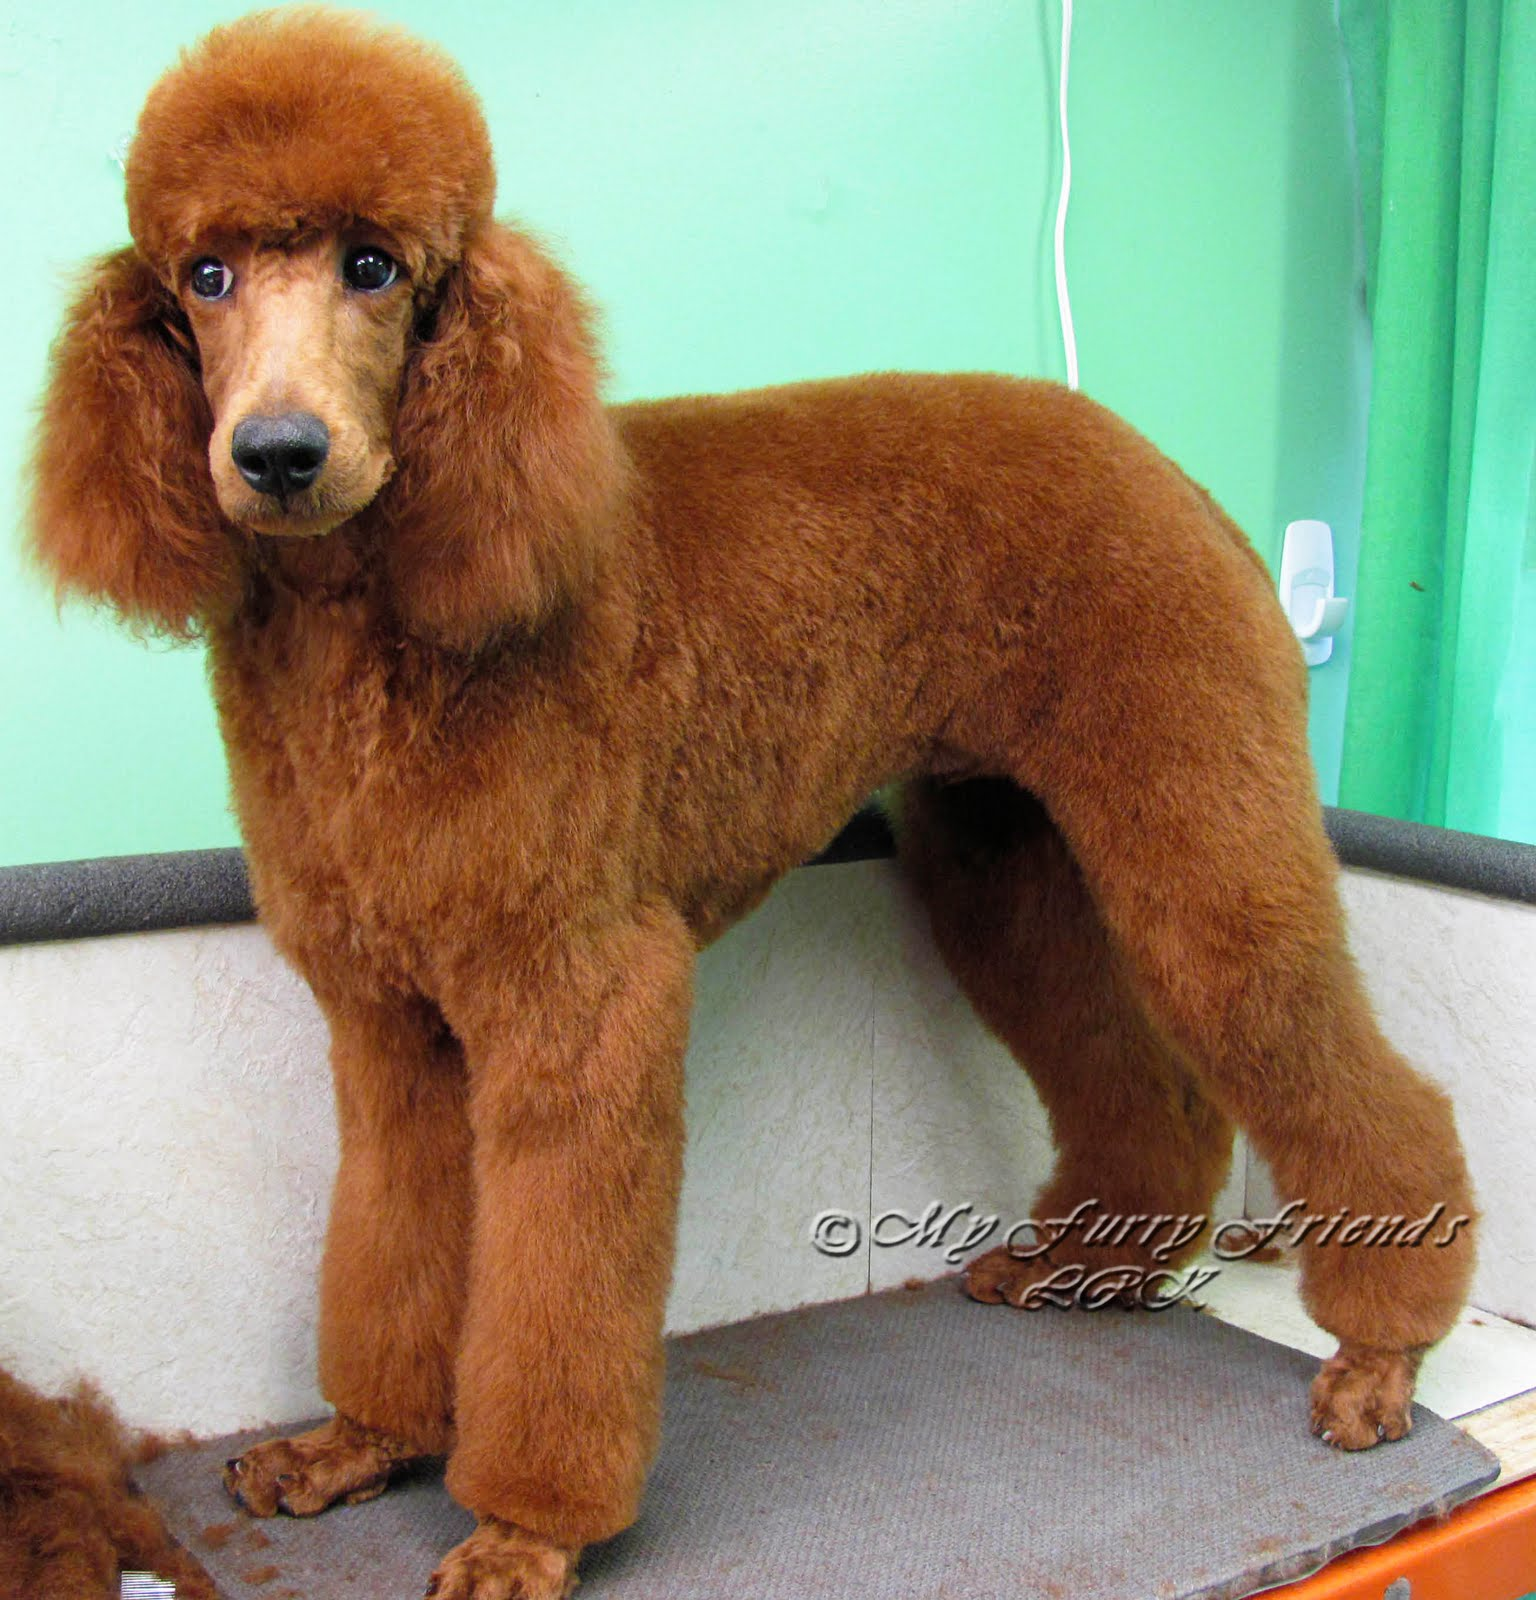 Grooming Your Furry Friend Does A Poodle Have To Be Groomed Like A